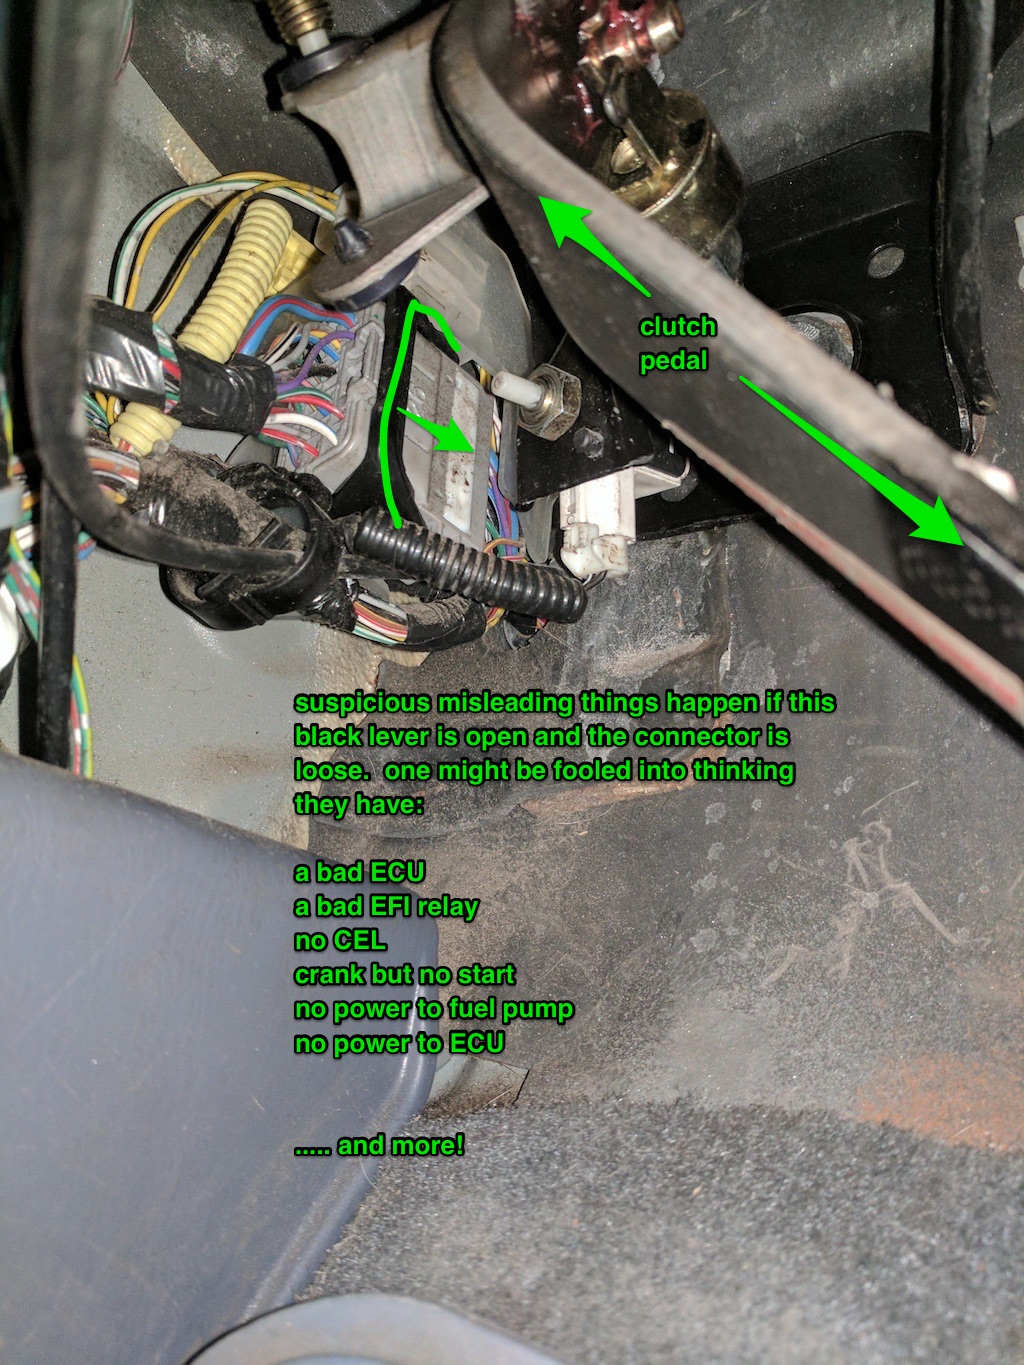 No power to + in diagnostic port or @ ECU  car turns over